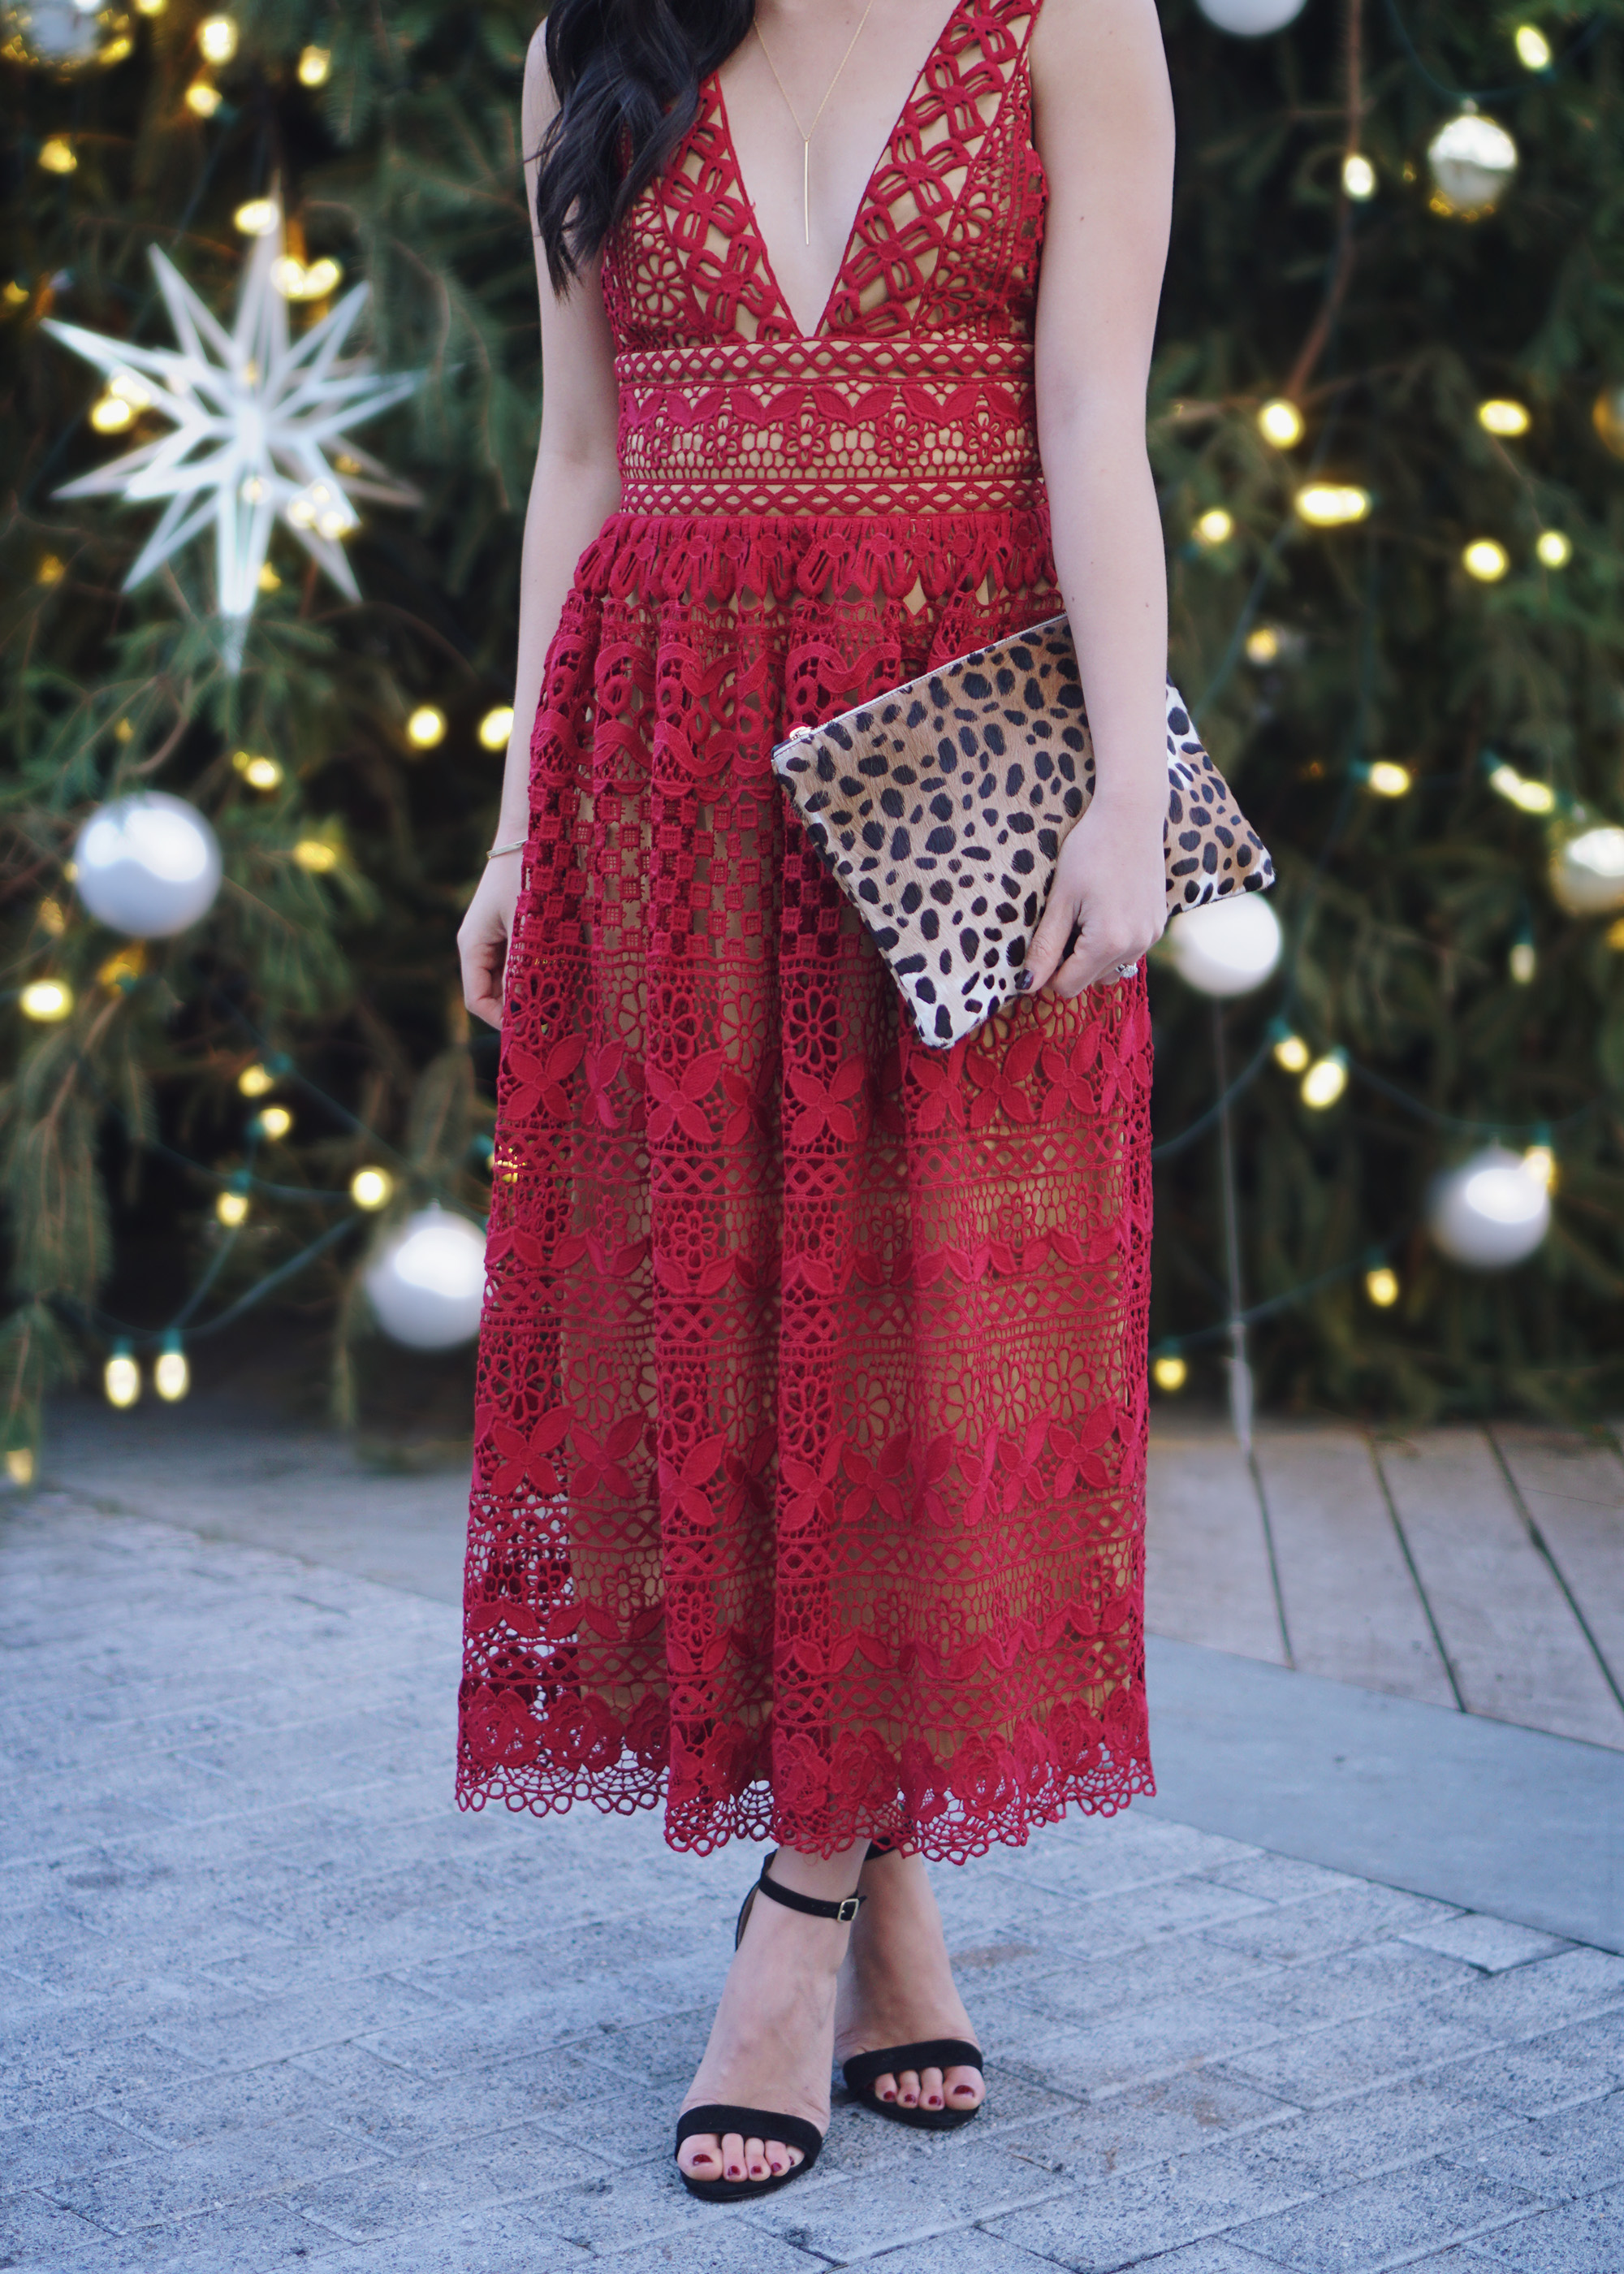 Holiday Party Outfit Ideas: Red Lace Dress